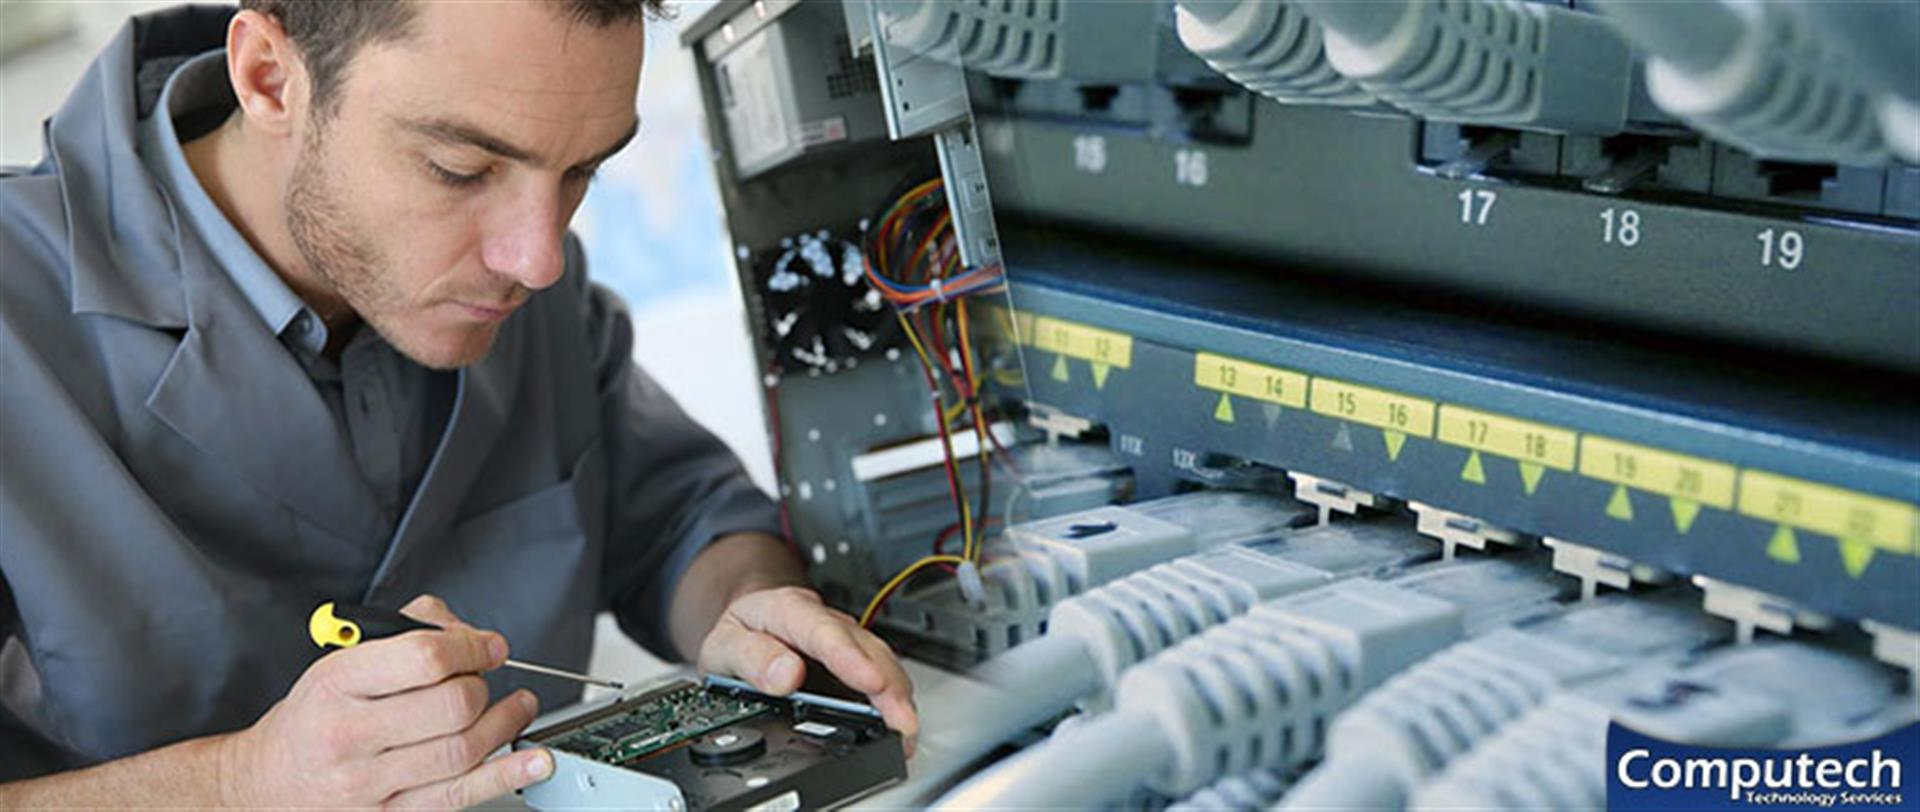 Benson Arizona On Site PC & Printer Repair, Networking, Voice and Data Low Voltage Cabling Solutions